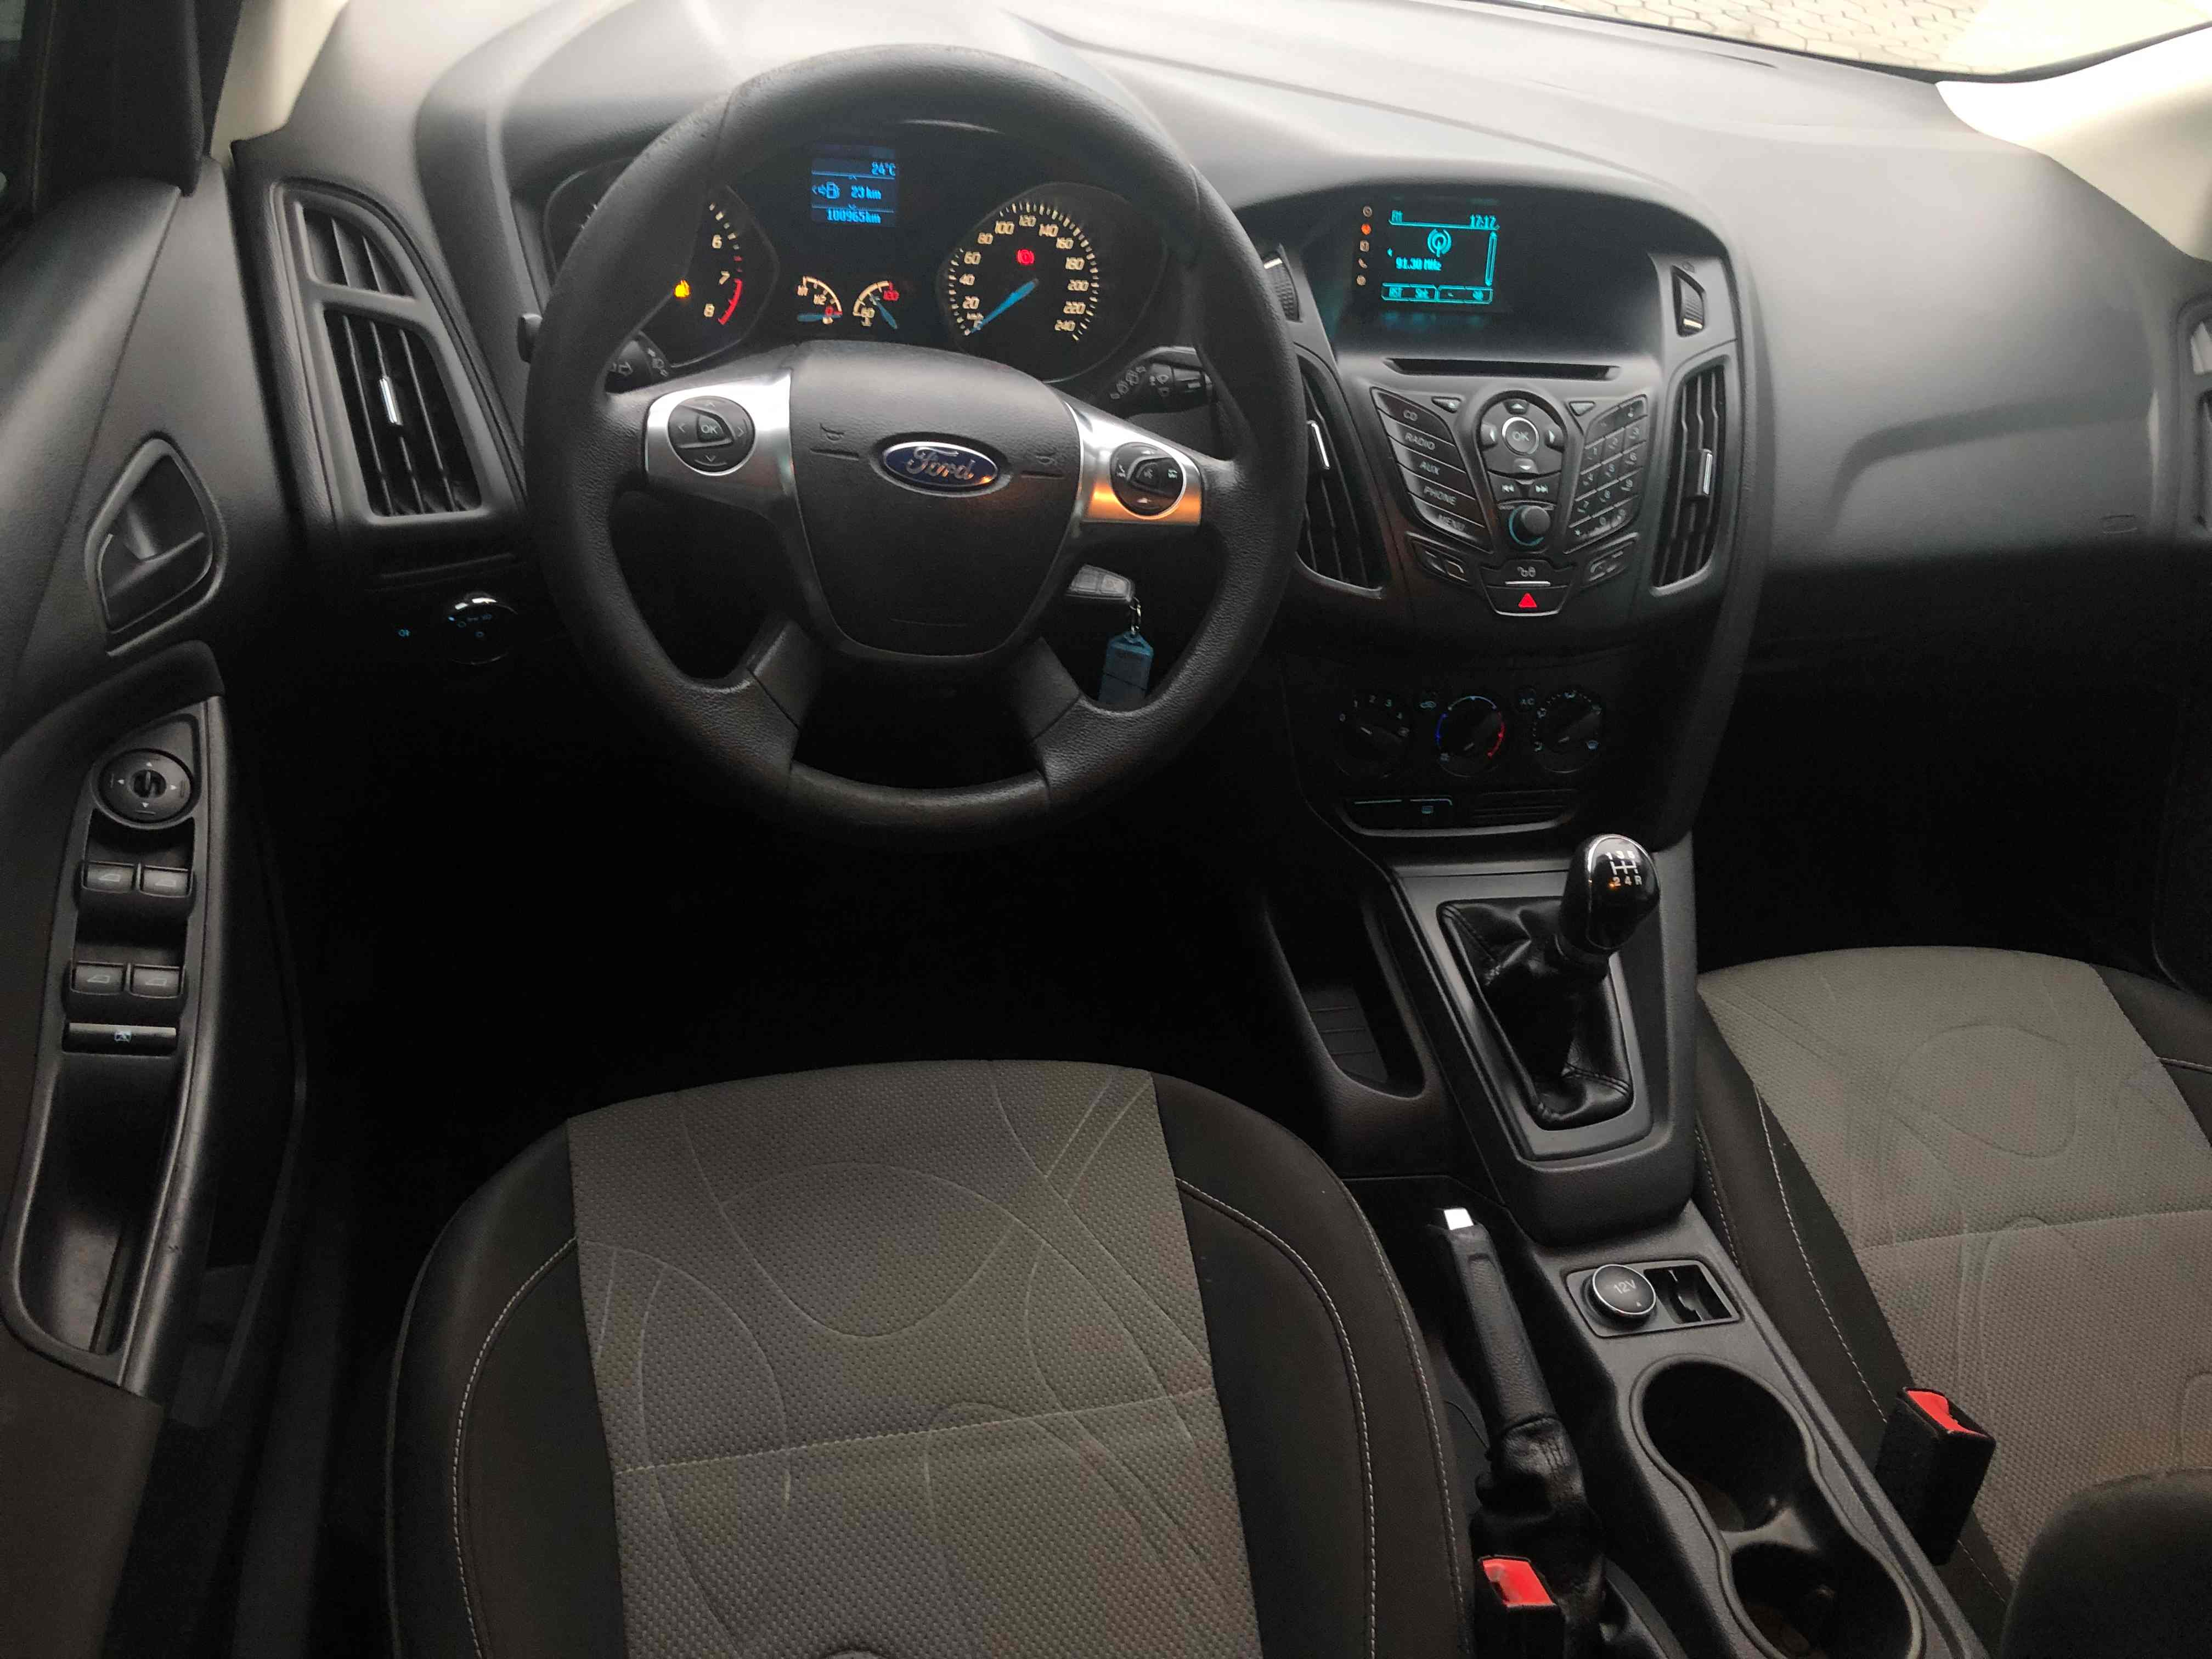 Ford Focus S 1.6L 2014